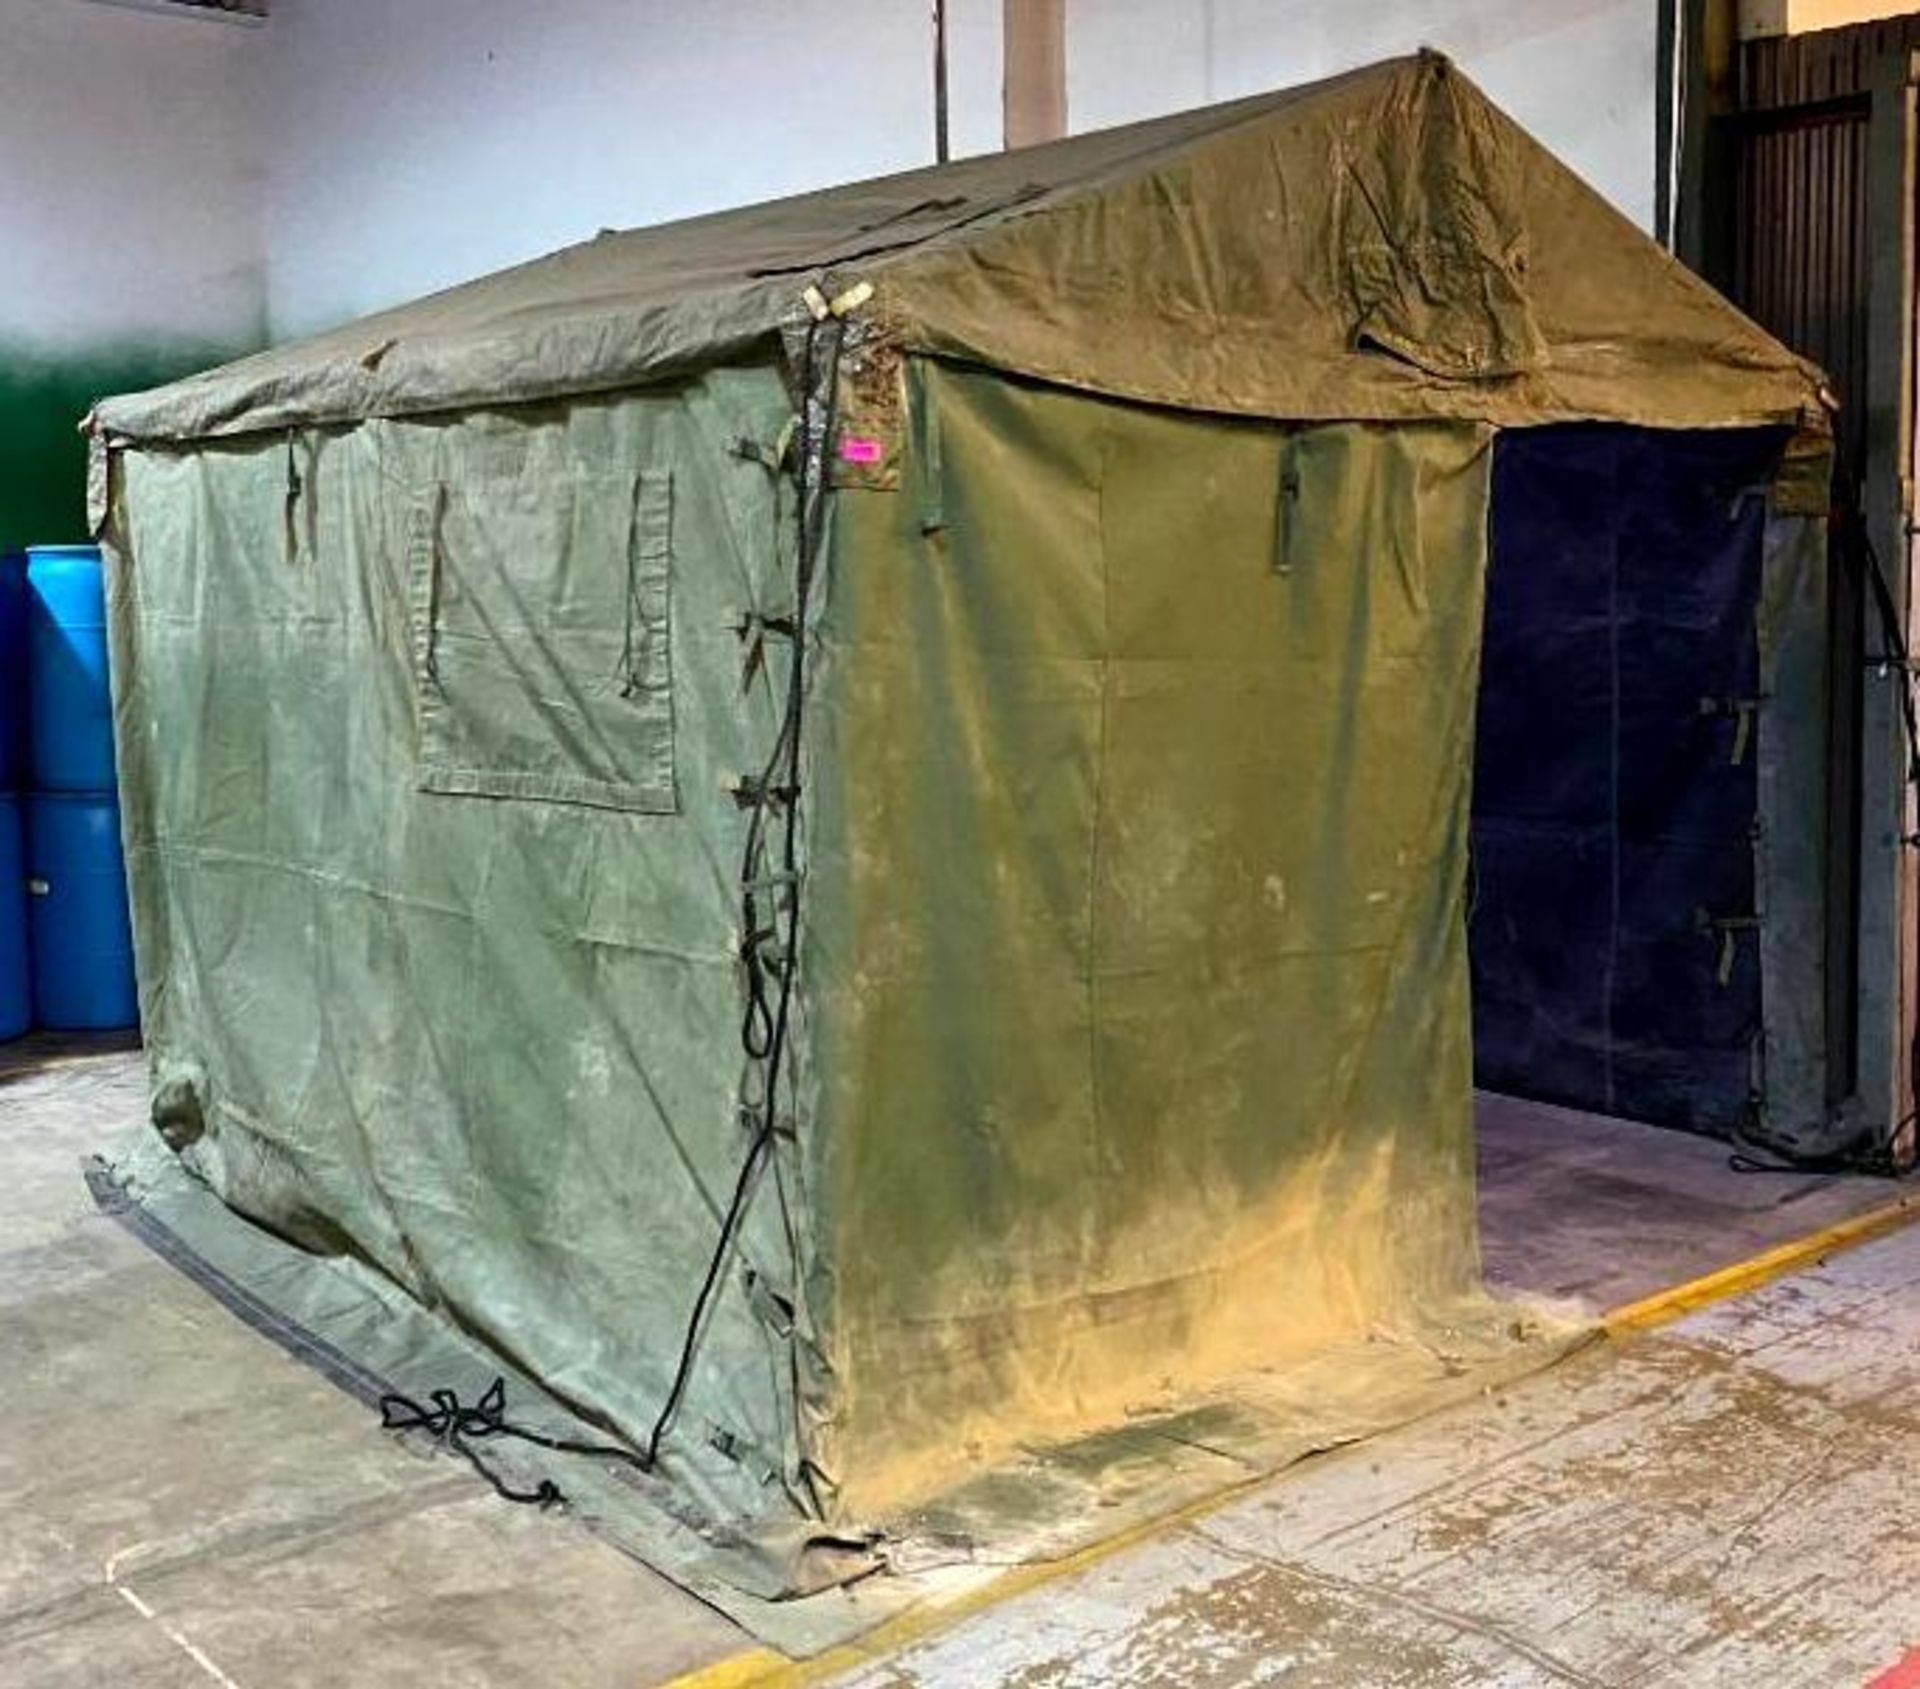 DESCRIPTION: MILITARY TENT WITH FRAME ADDITIONAL INFORMATION: HAD HOLES CUT IN CANOPY FOR SPRINKLER